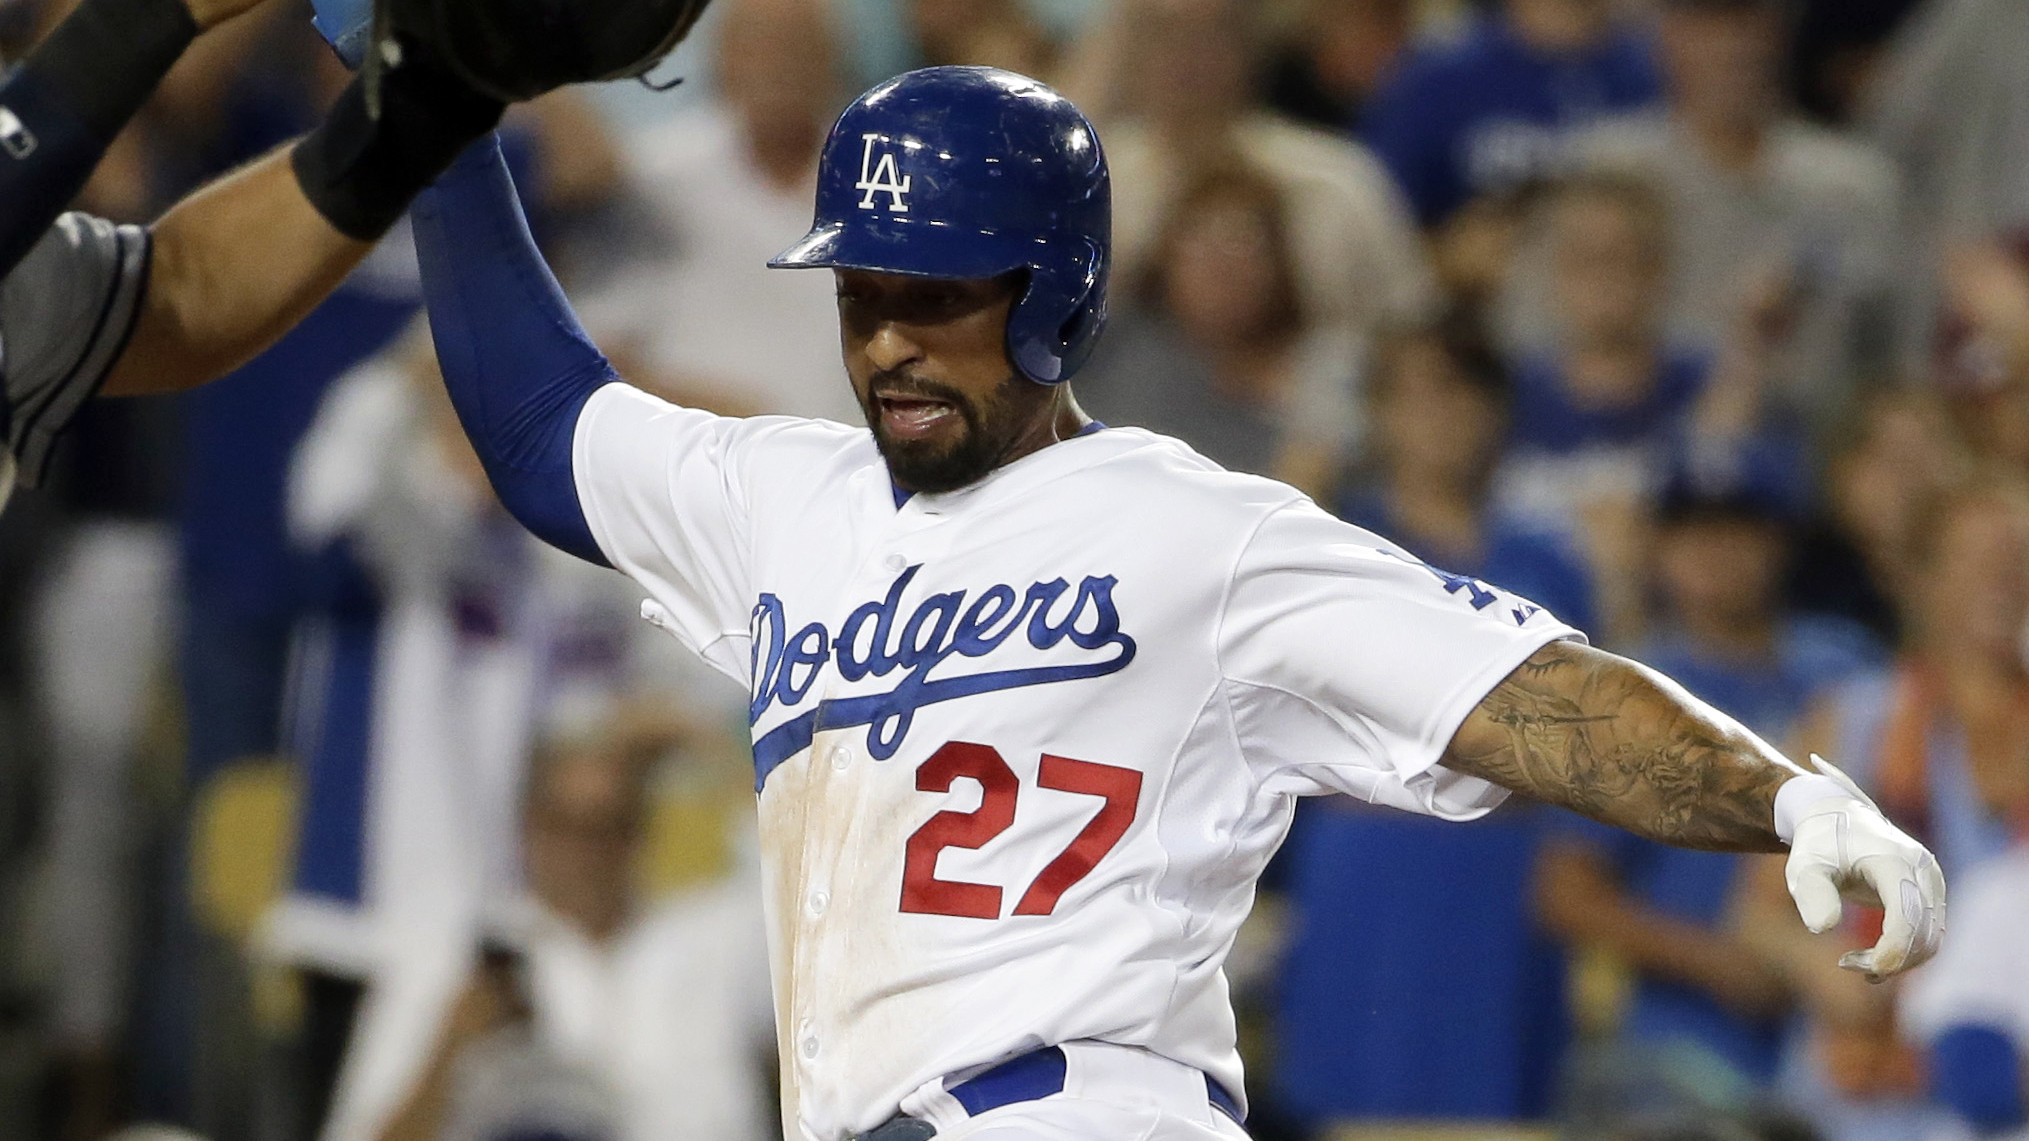 Dodgers rally past Padres, 8-6